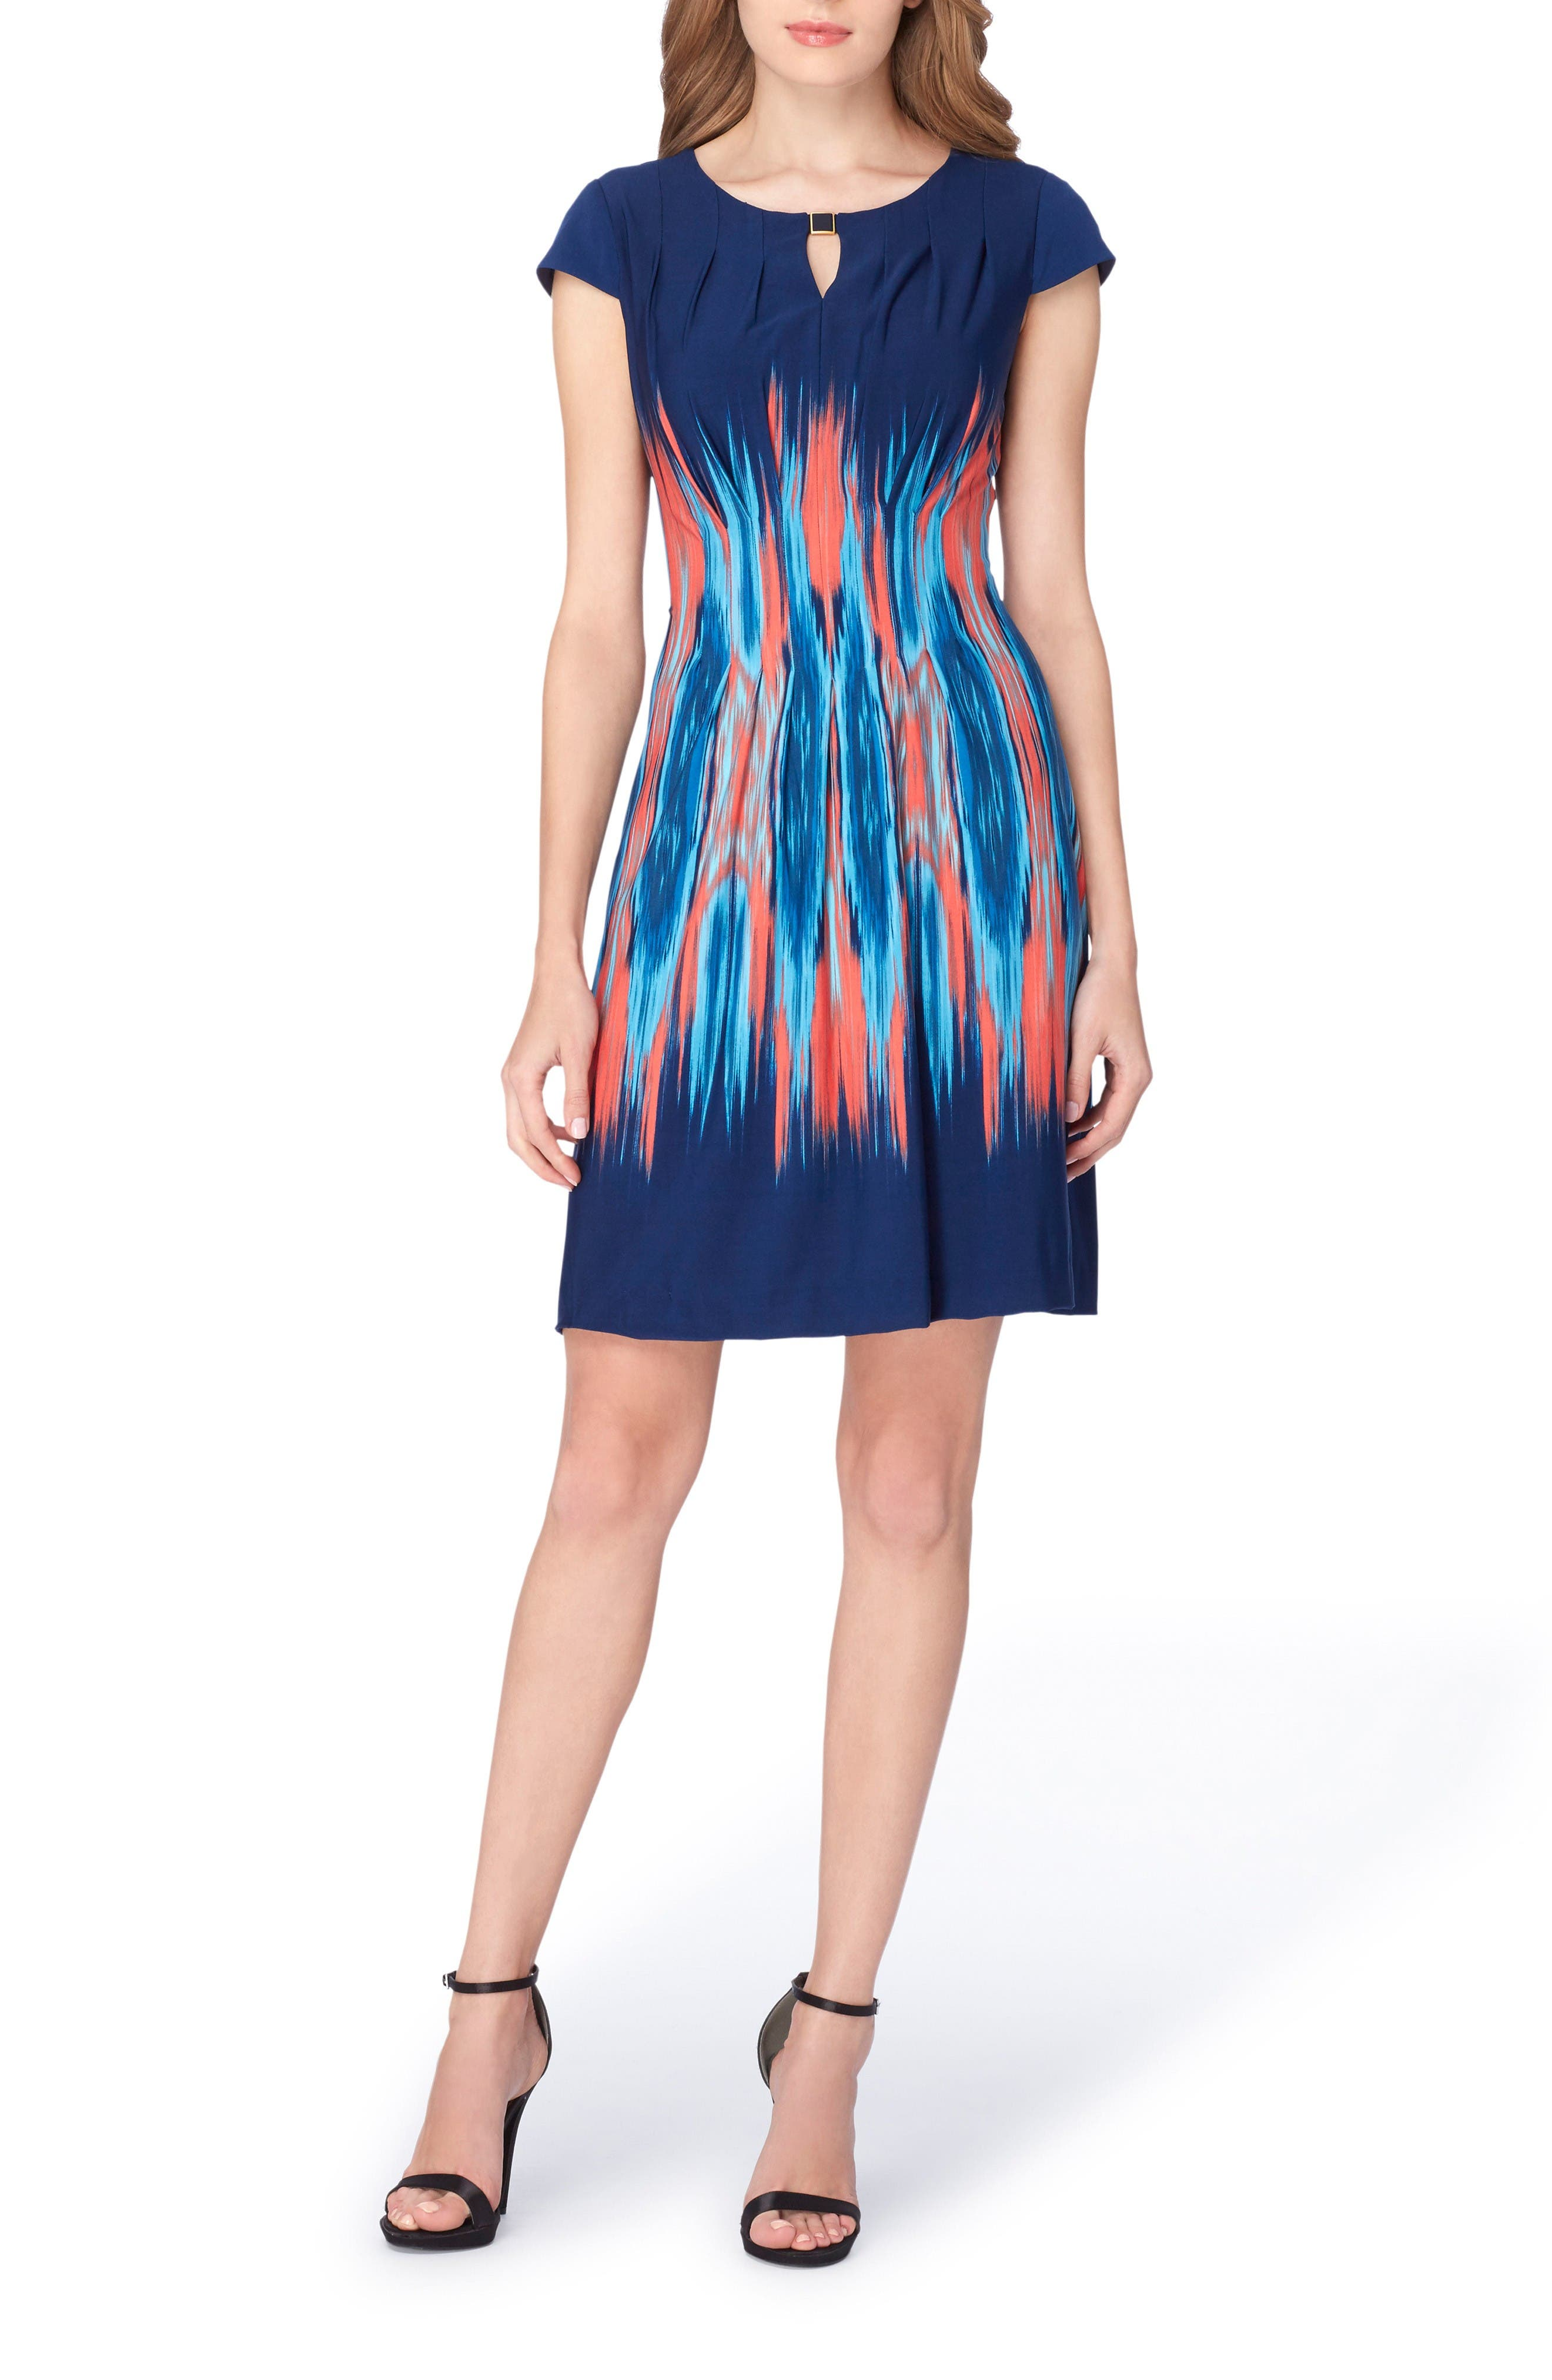 Flame Print Jersey Sheath Dress,                             Alternate thumbnail 3, color,                             Navy/ Coral/ Turquoise